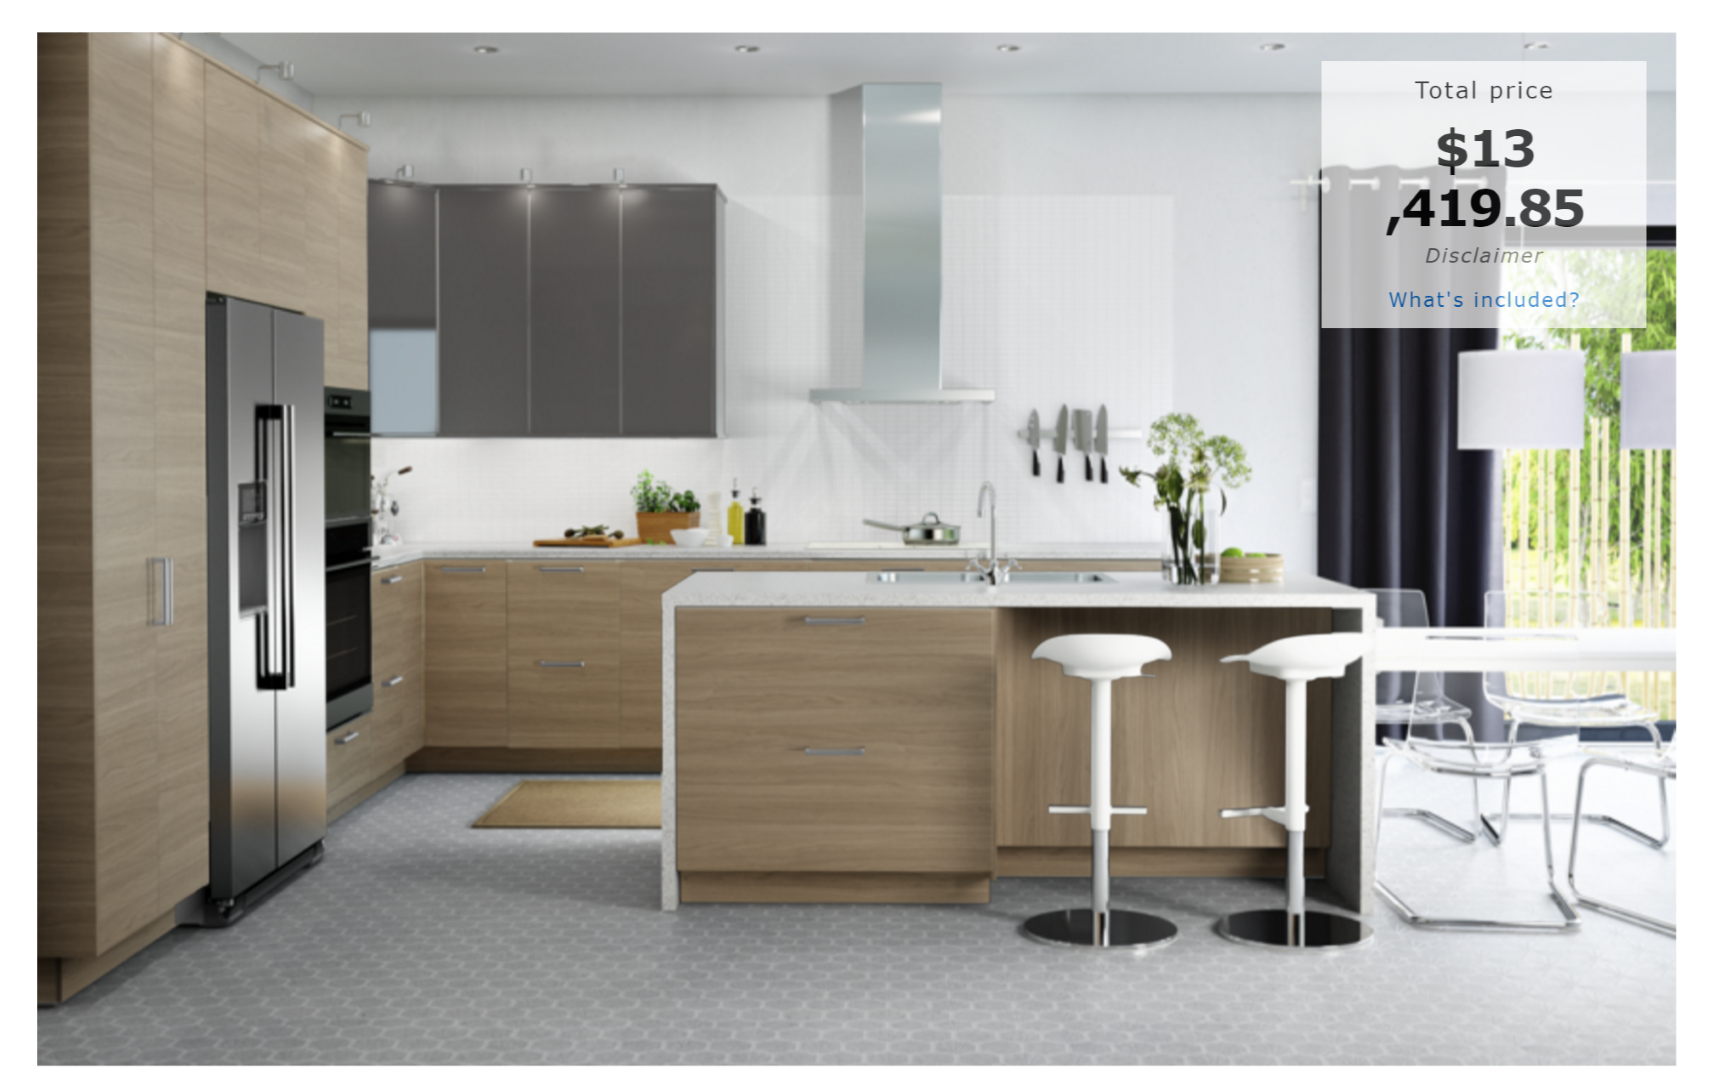 Kitchen Cabinet Pricing Per Linear Foot how much will an ikea kitchen cost?